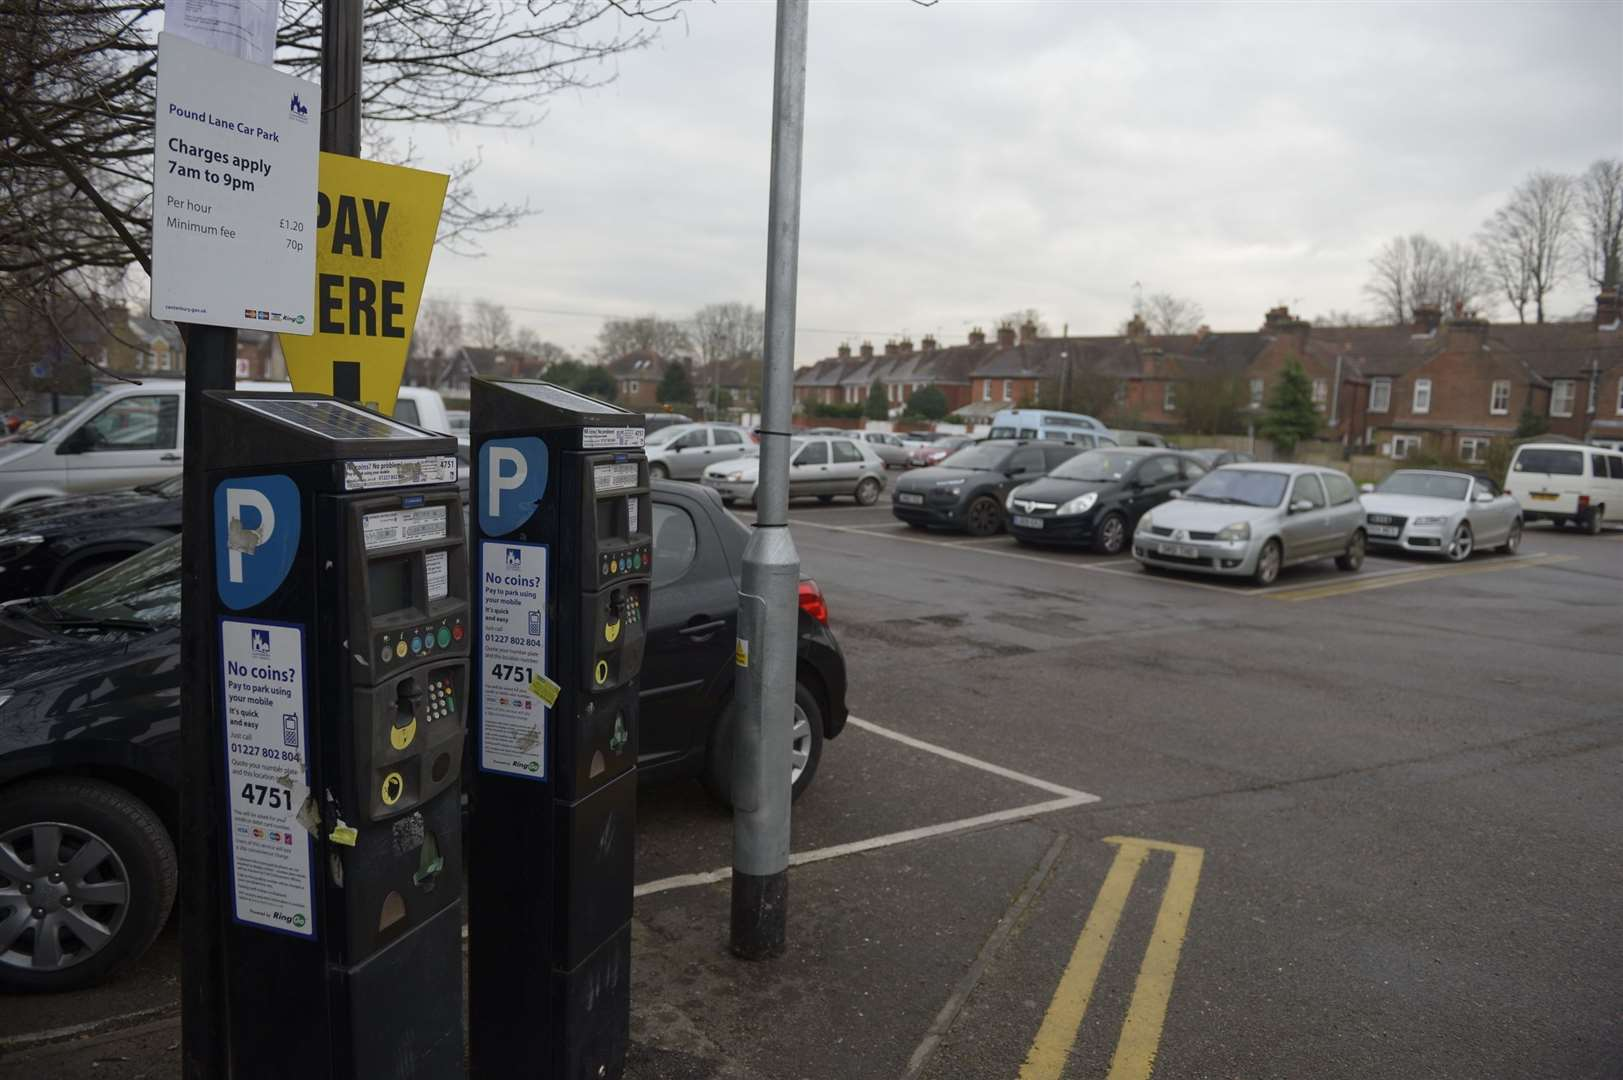 Pound Lane car park in Canterbury could be closed in the future